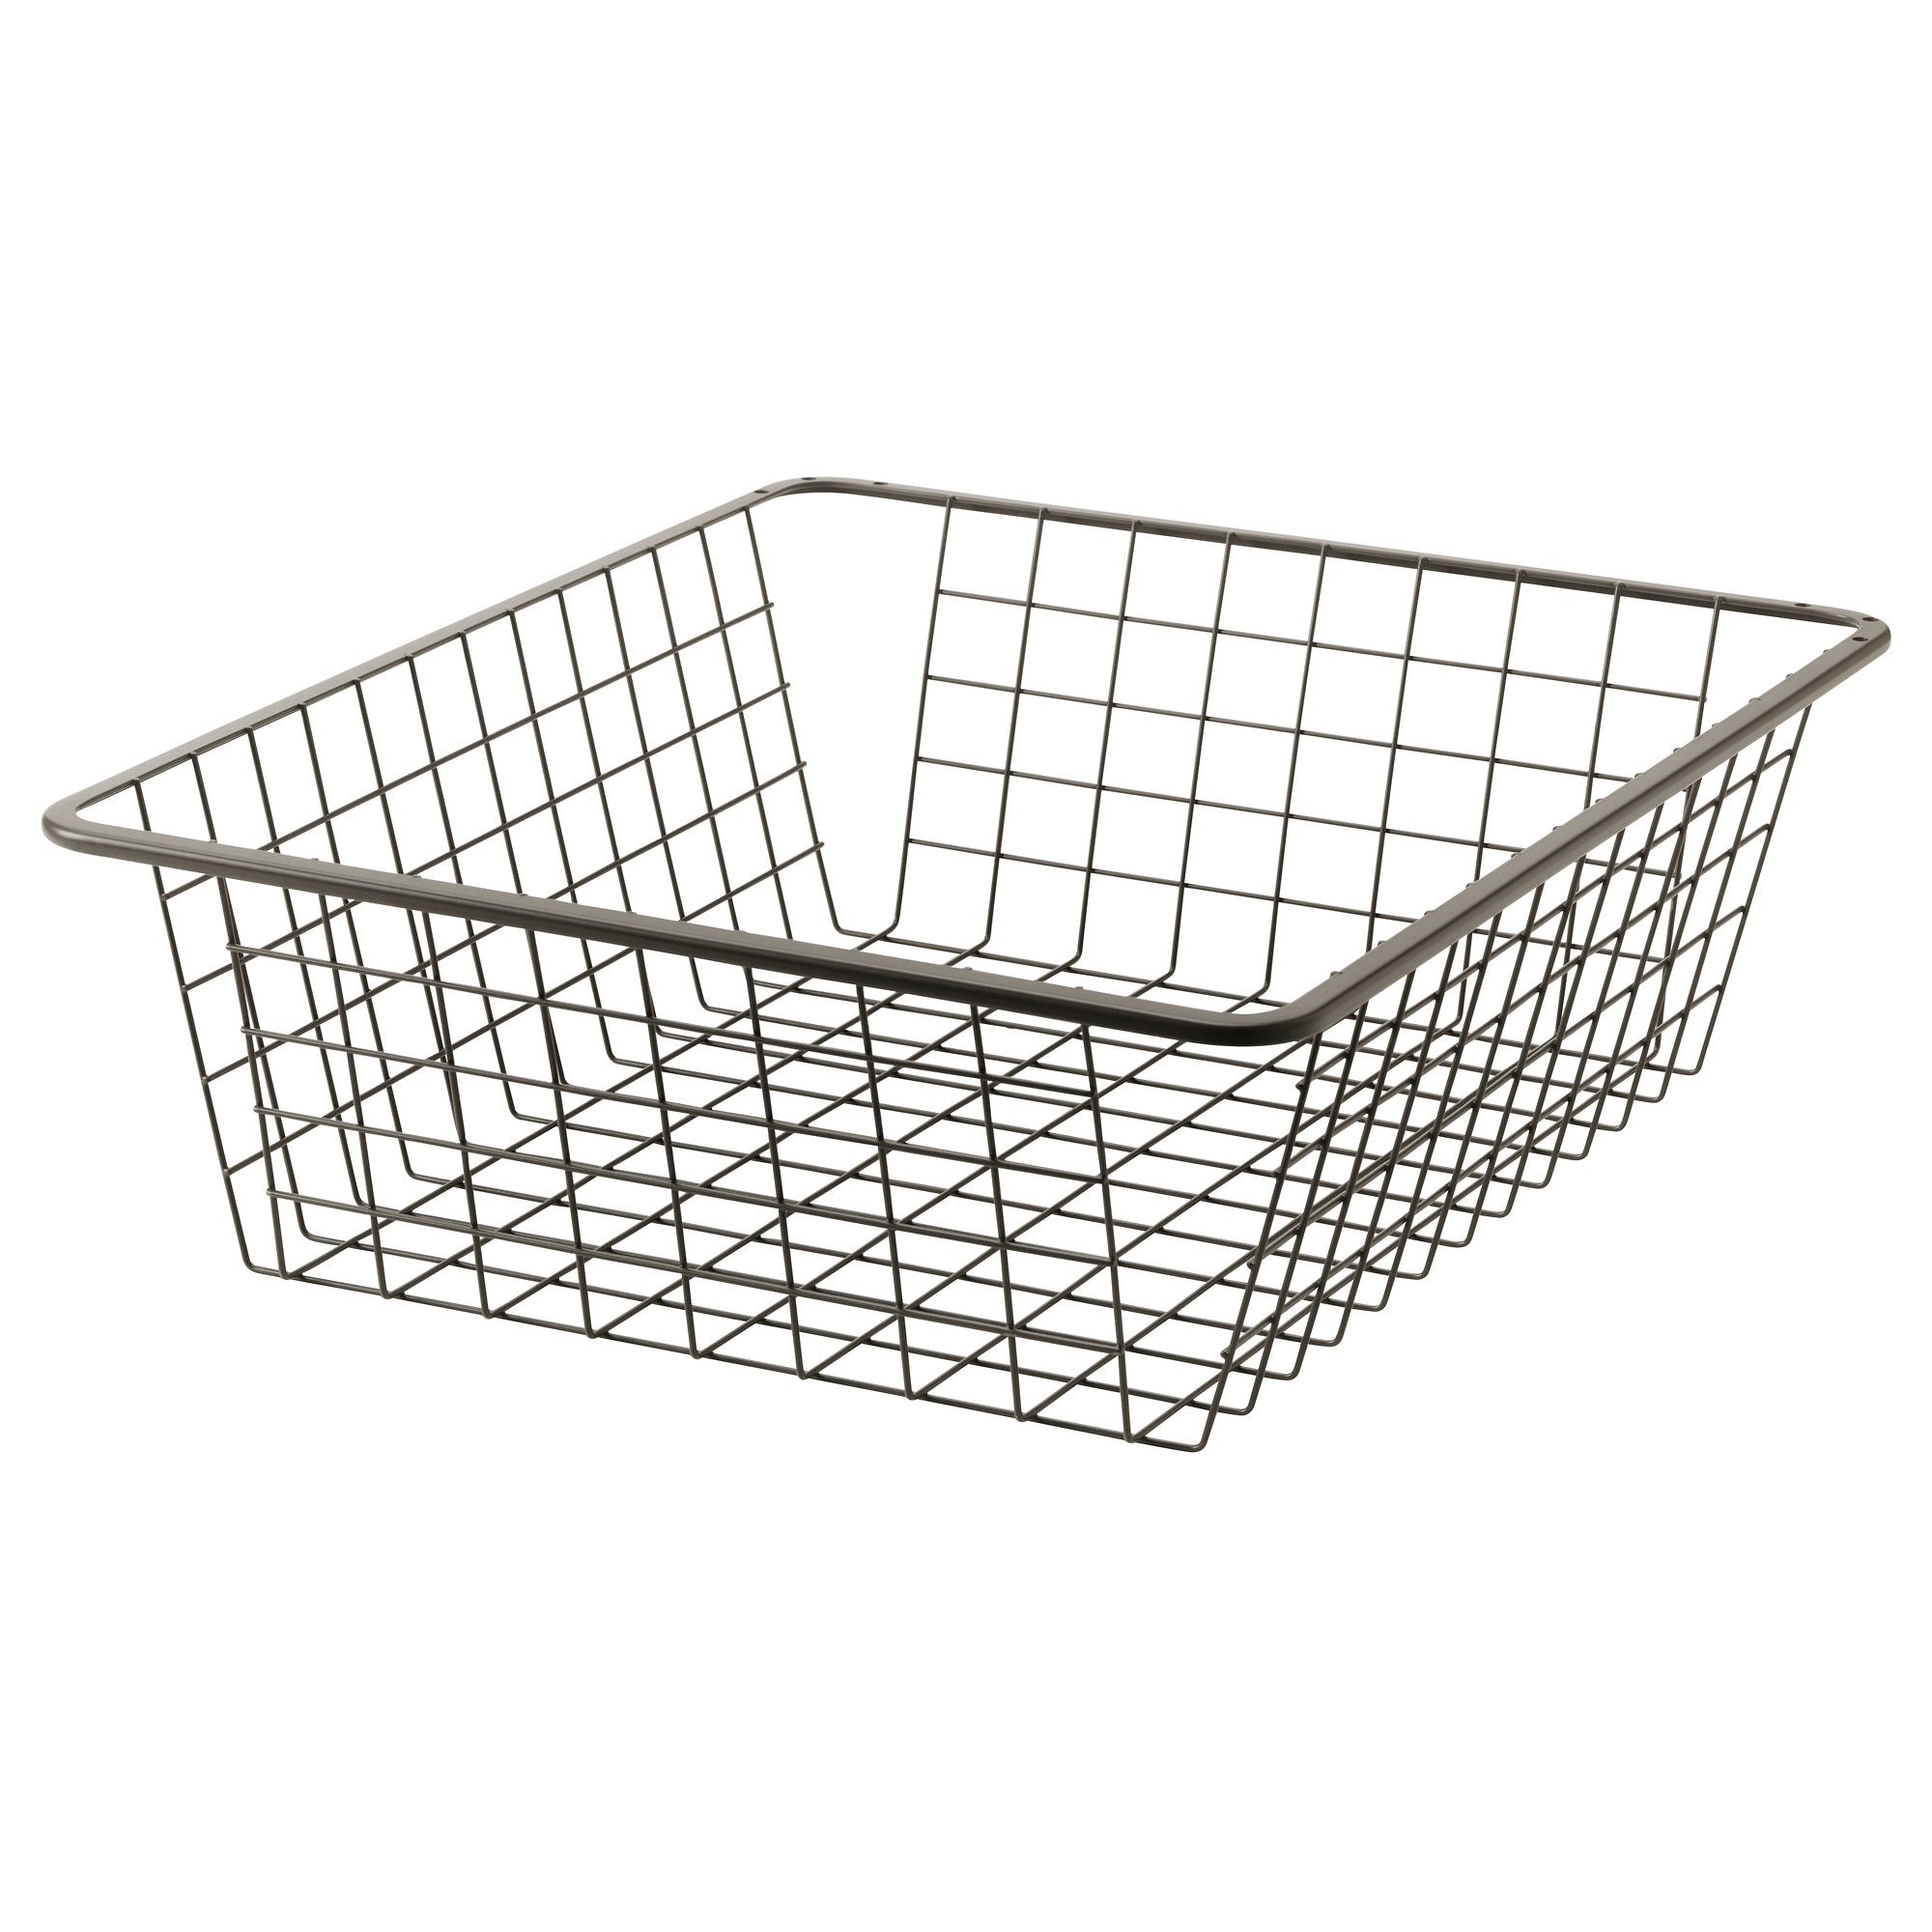 KOMPLEMENT Wire basket with pull-out rail - 75x58 cm - IKEA